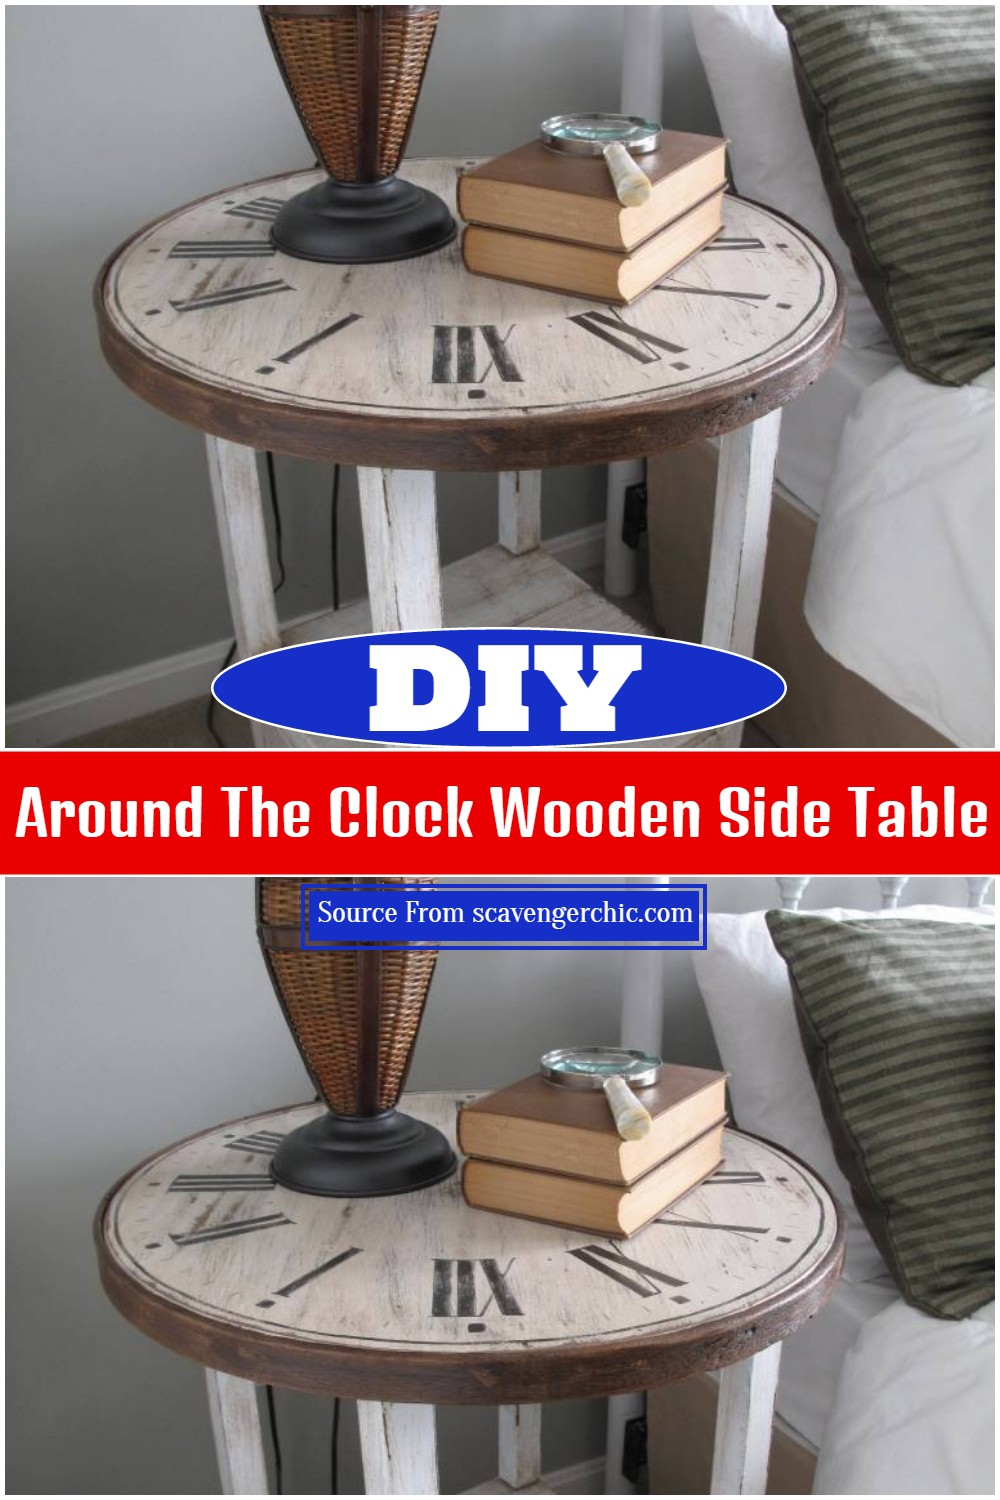 DIY Around The Clock Wooden Side Table